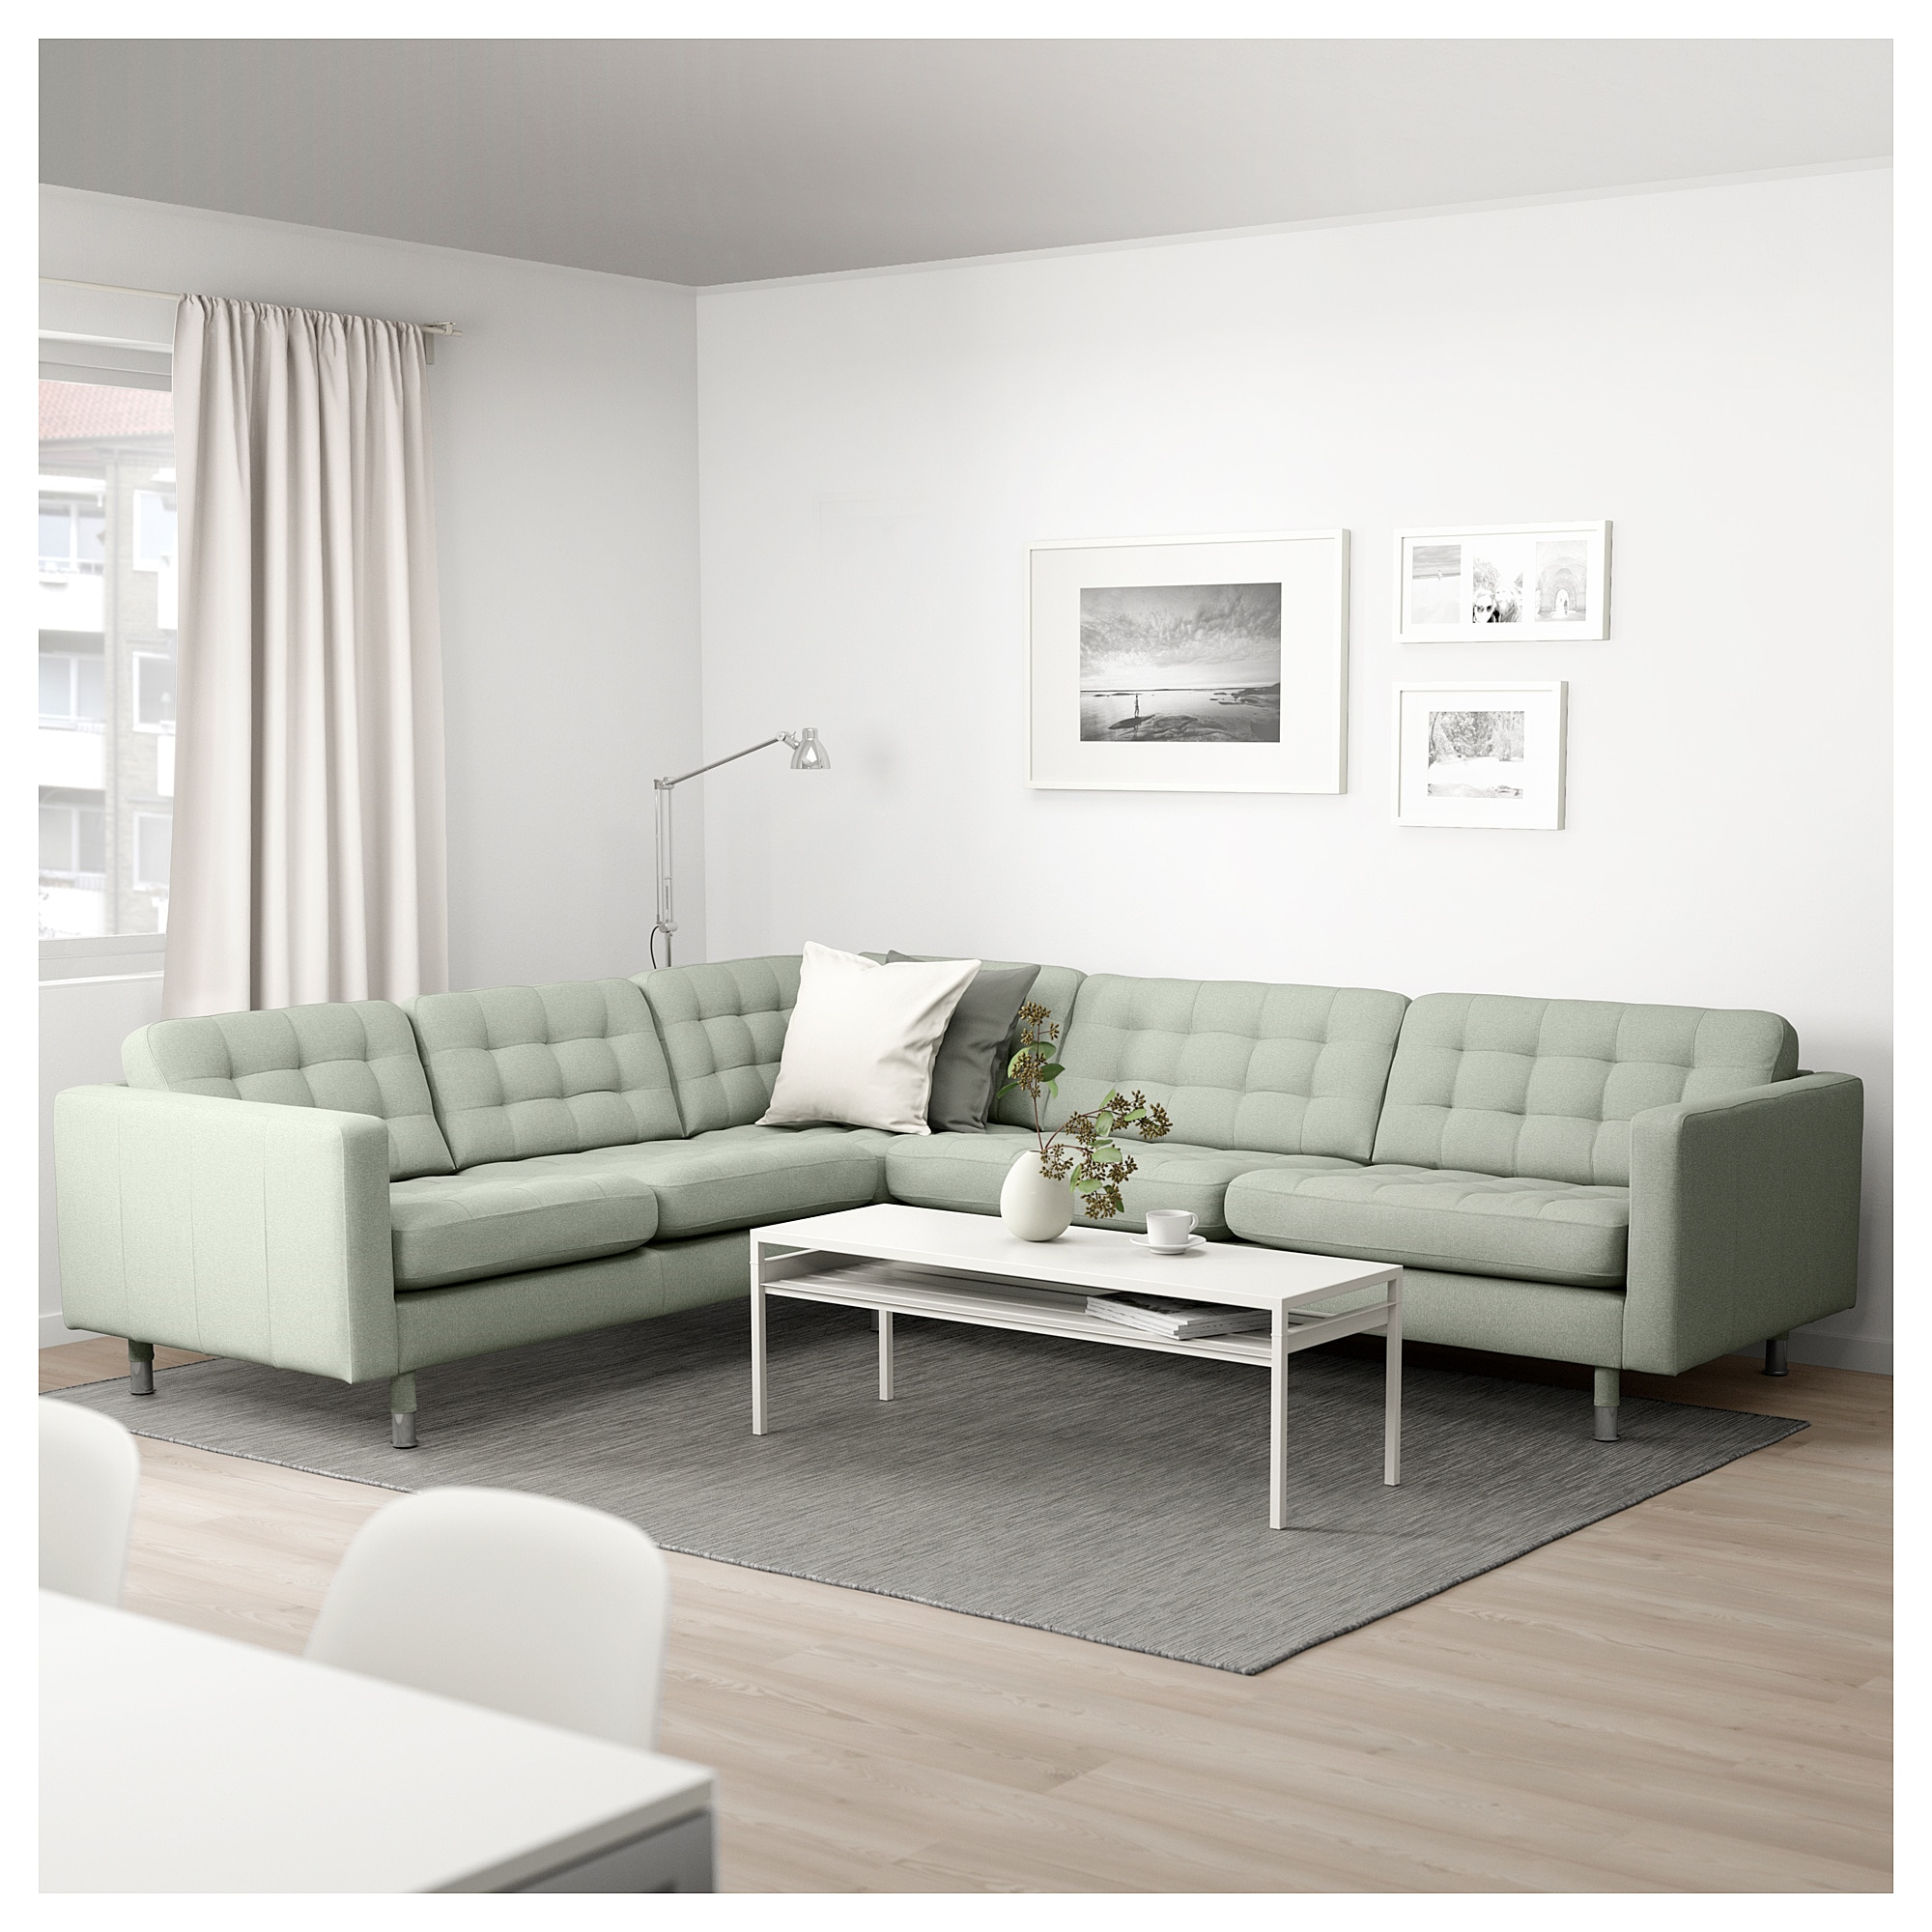 Furniture Home Furnishings Find Your Inspiration Green Couch Living Room Green Sofa Living Corner Sofa